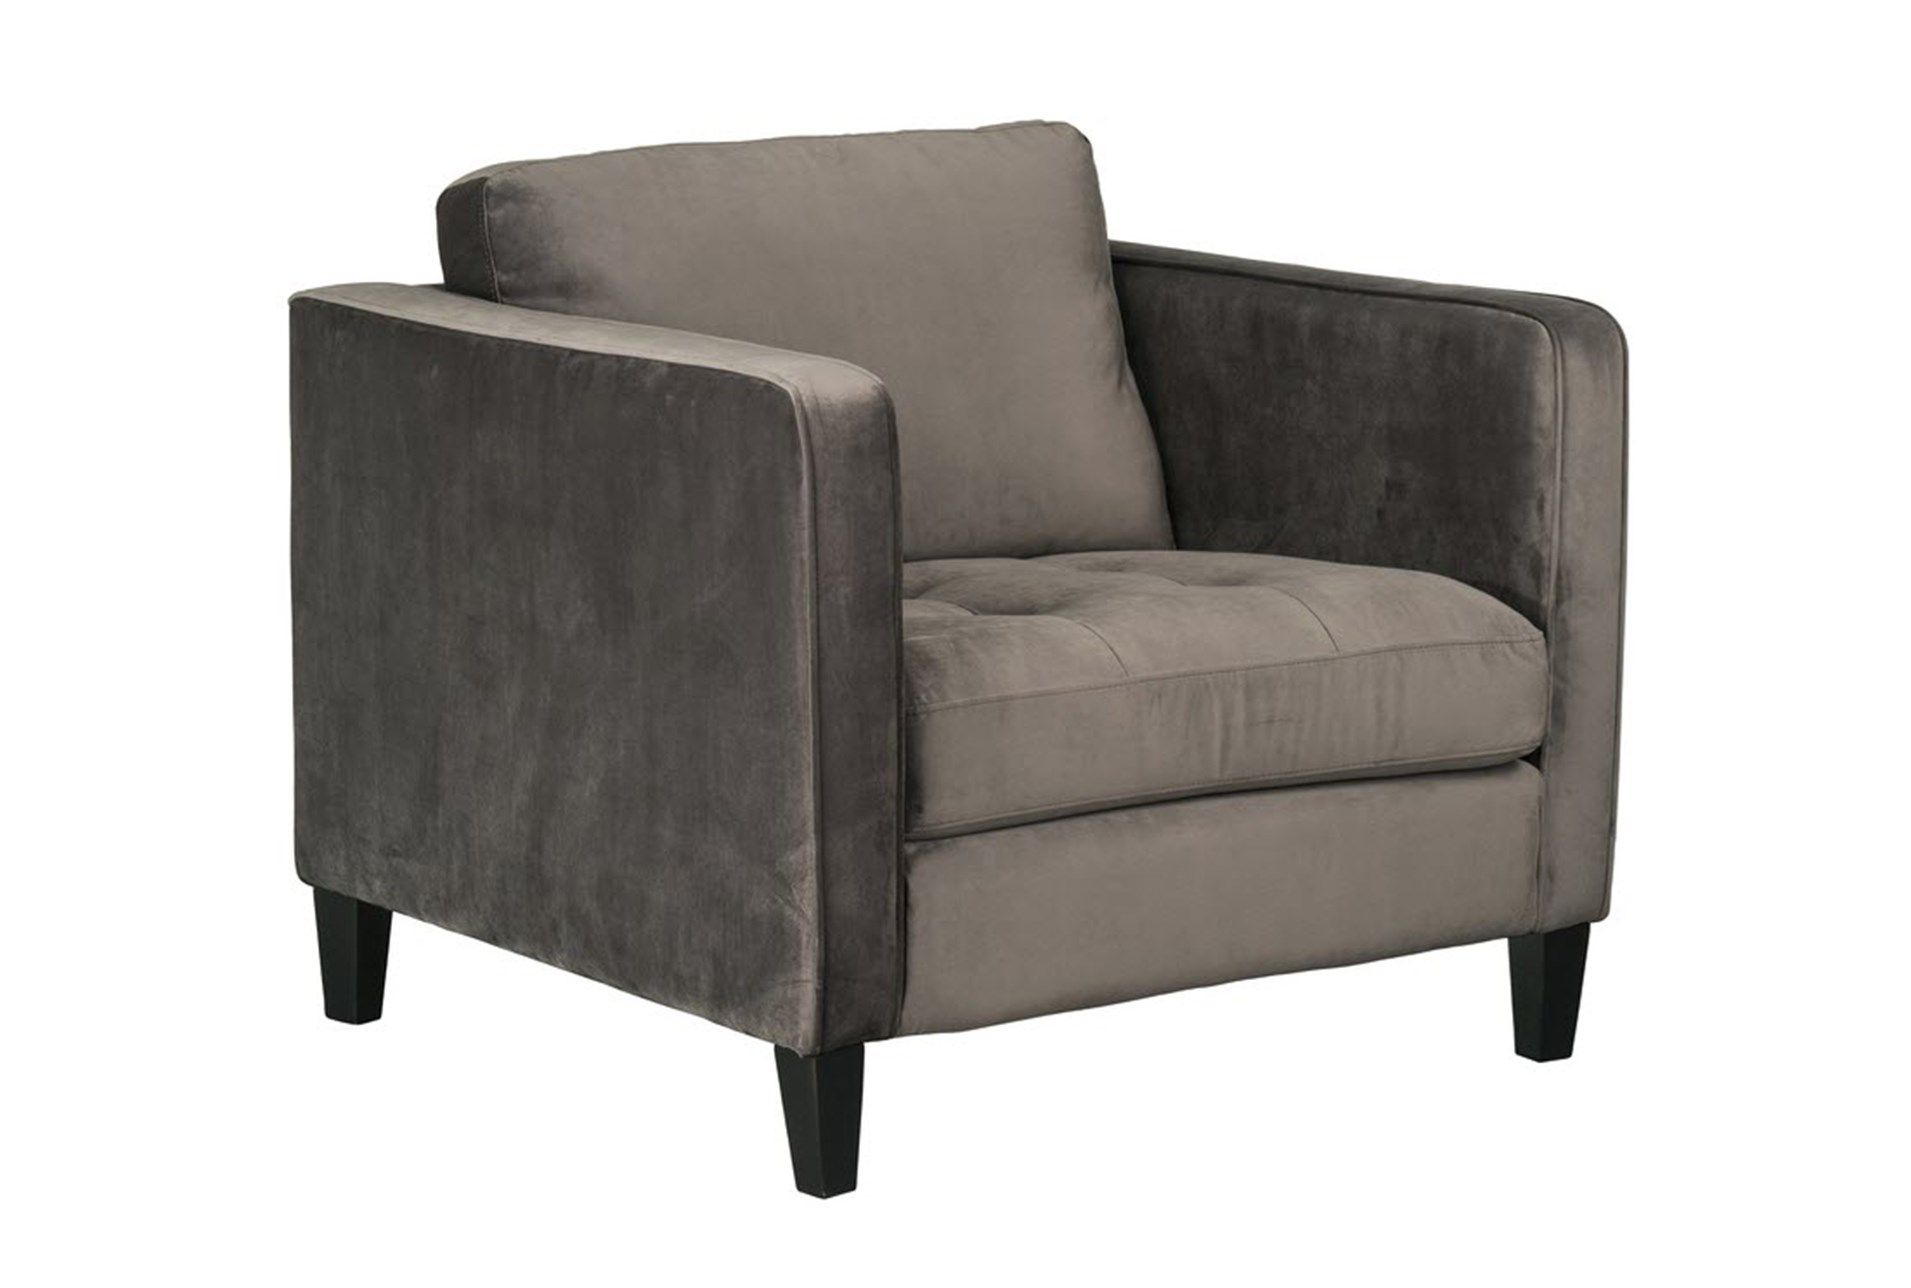 Magnolia Home Dapper Fog Chair | Our New Home 2018 | Magnolia Homes With Regard To Magnolia Home Ravel Linen Sofa Chairs (Image 11 of 25)